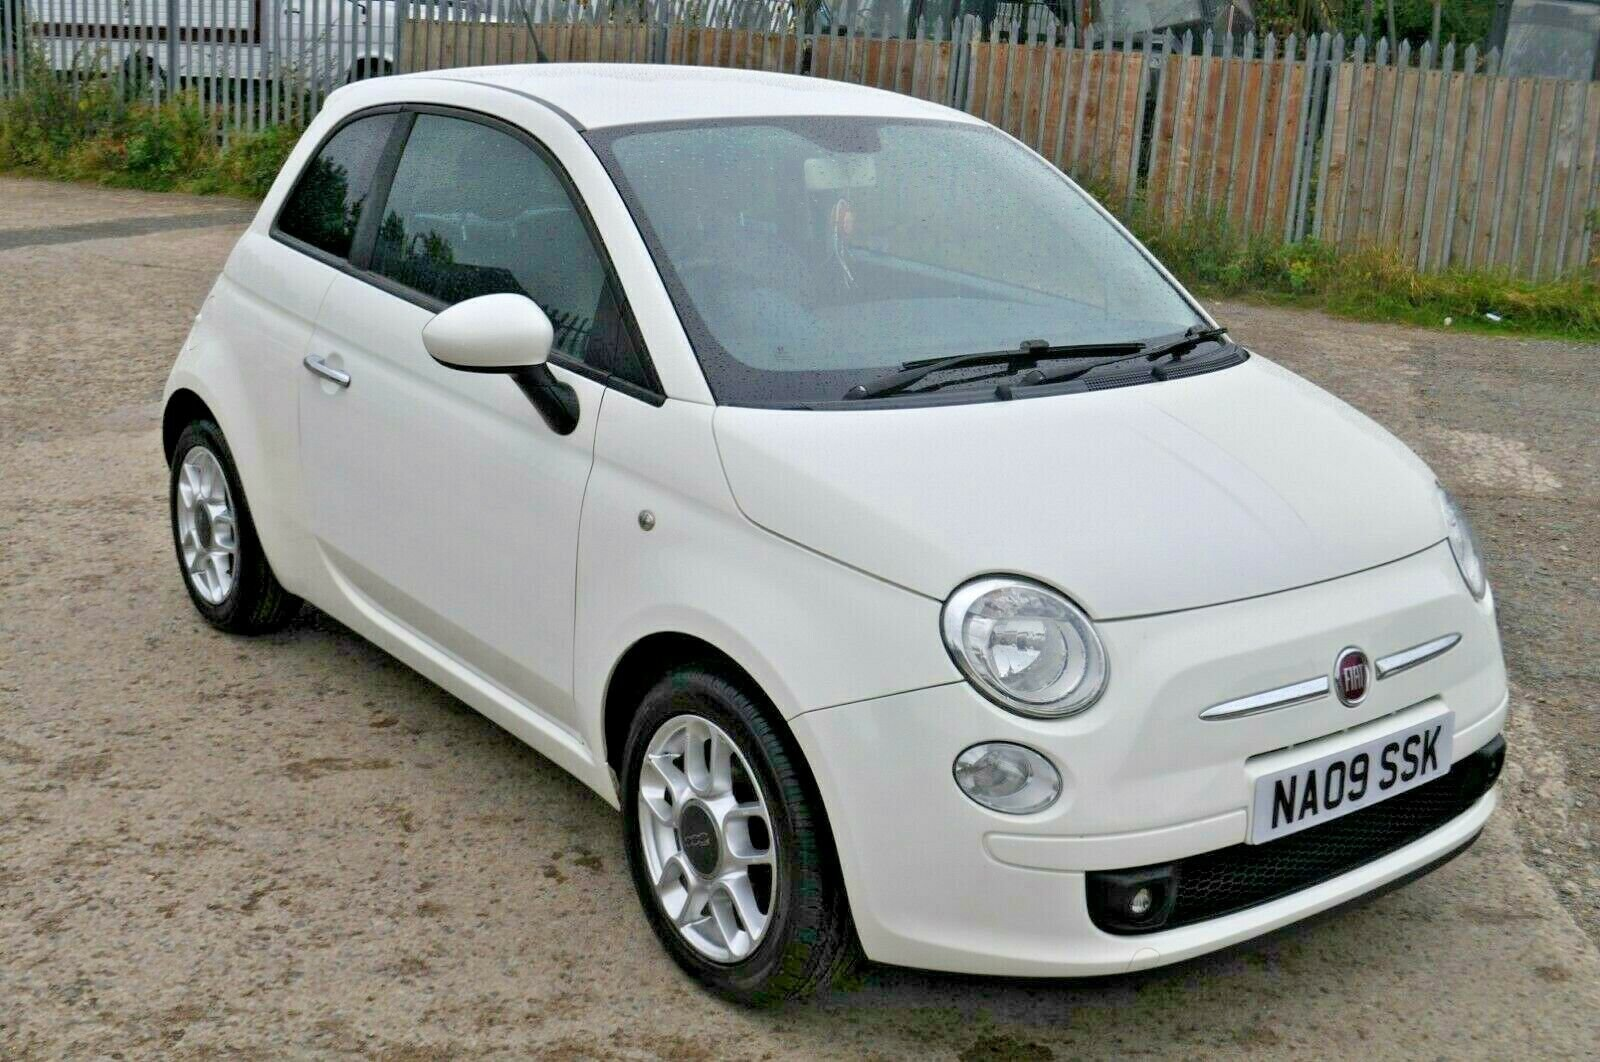 2009 FIAT 500 1.2 SPORT 2 KEEPERS FSH LOW MILES GRAB A BARGAIN  SOLD (picture 1 of 6)